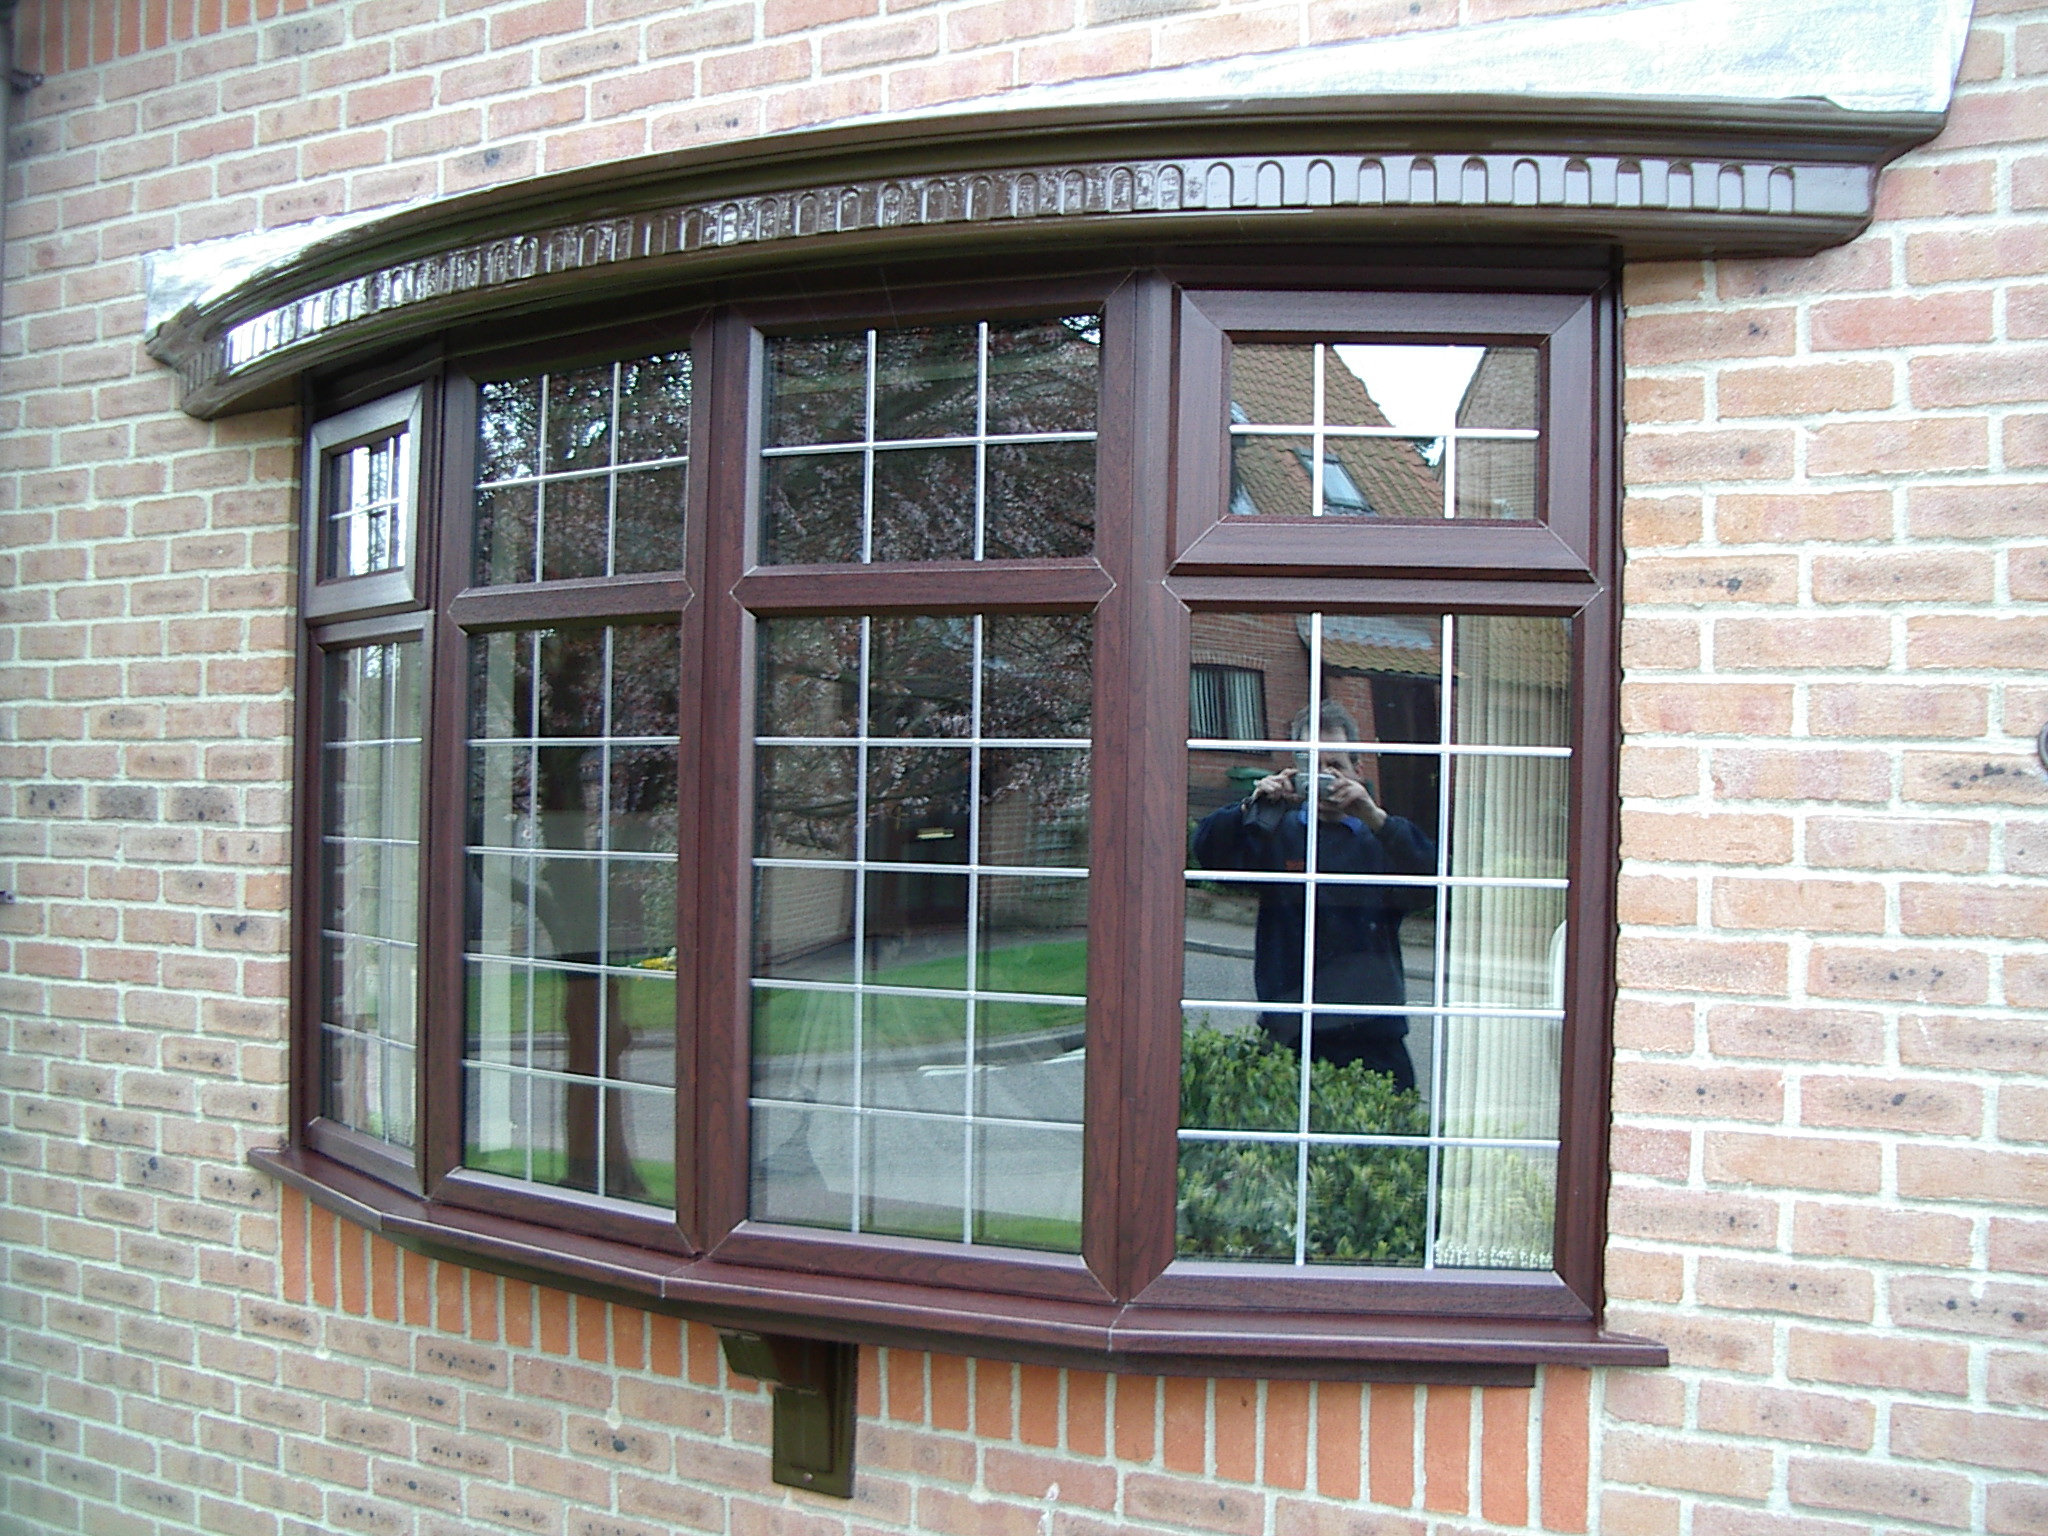 Window design home window designs home windows design for Door n window designs